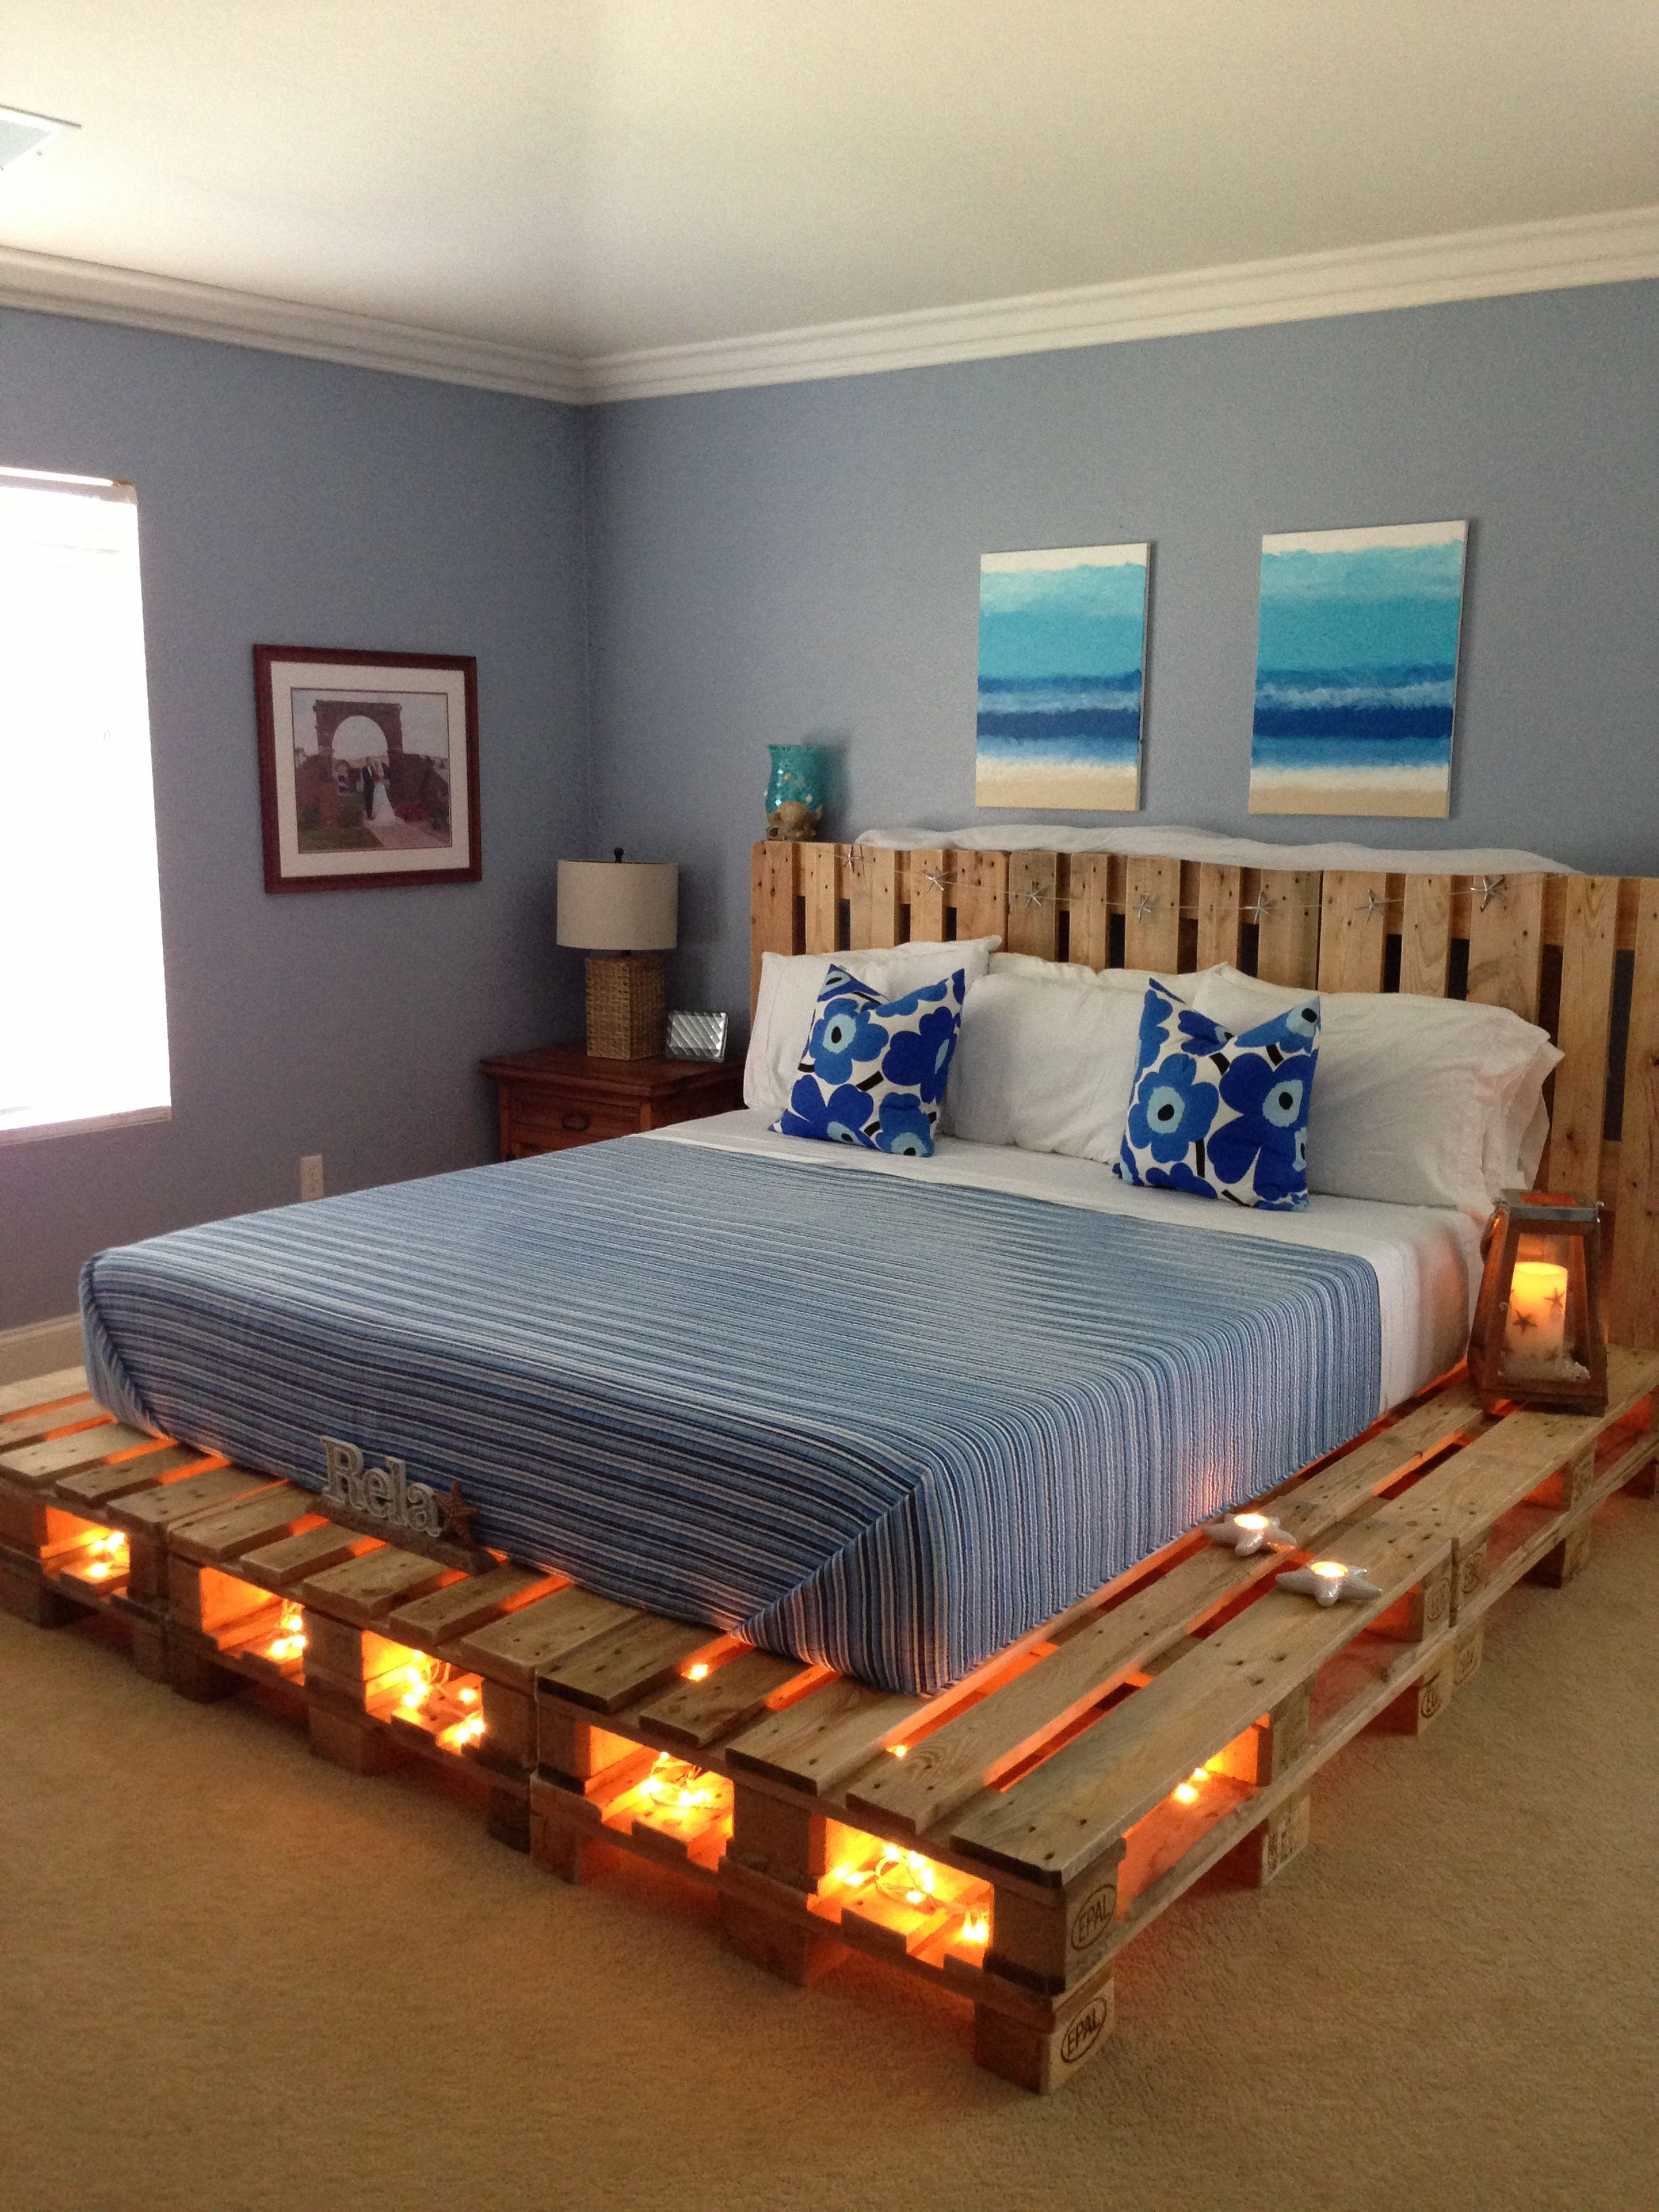 Pallet Beds Are Cool Diy Pallet Furniture Diy Pallet Bed Wooden Pallet Beds